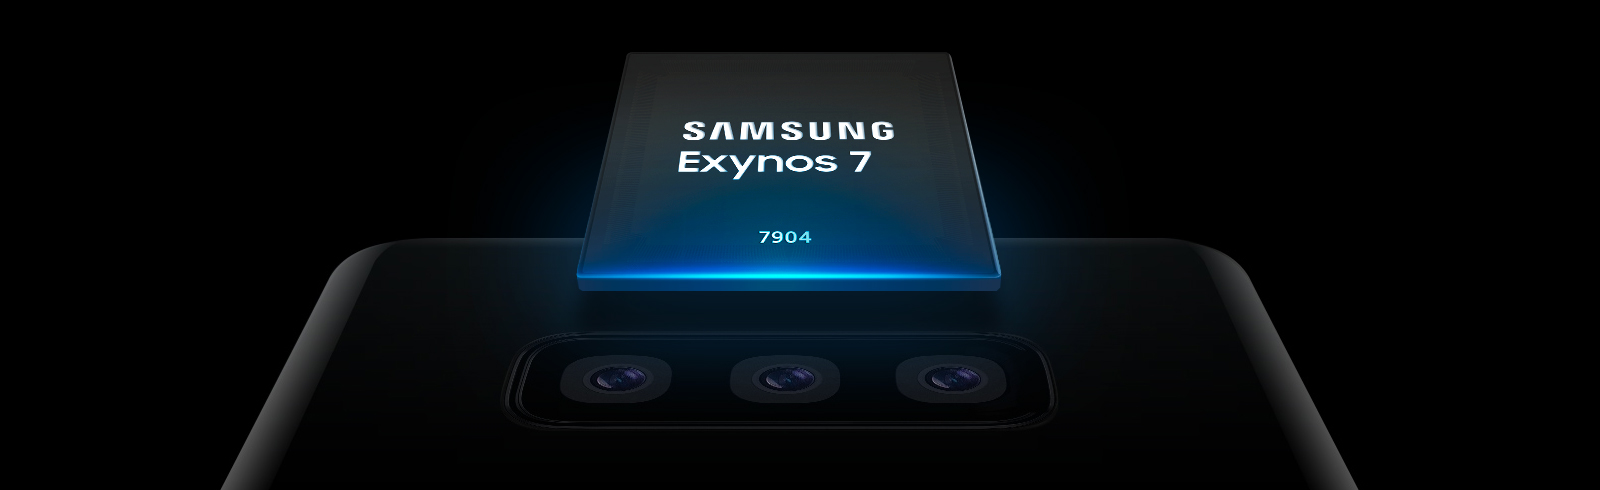 Samsung announces the Exynos 7904 for enhanced camera capabilities of mid-range mobile devices